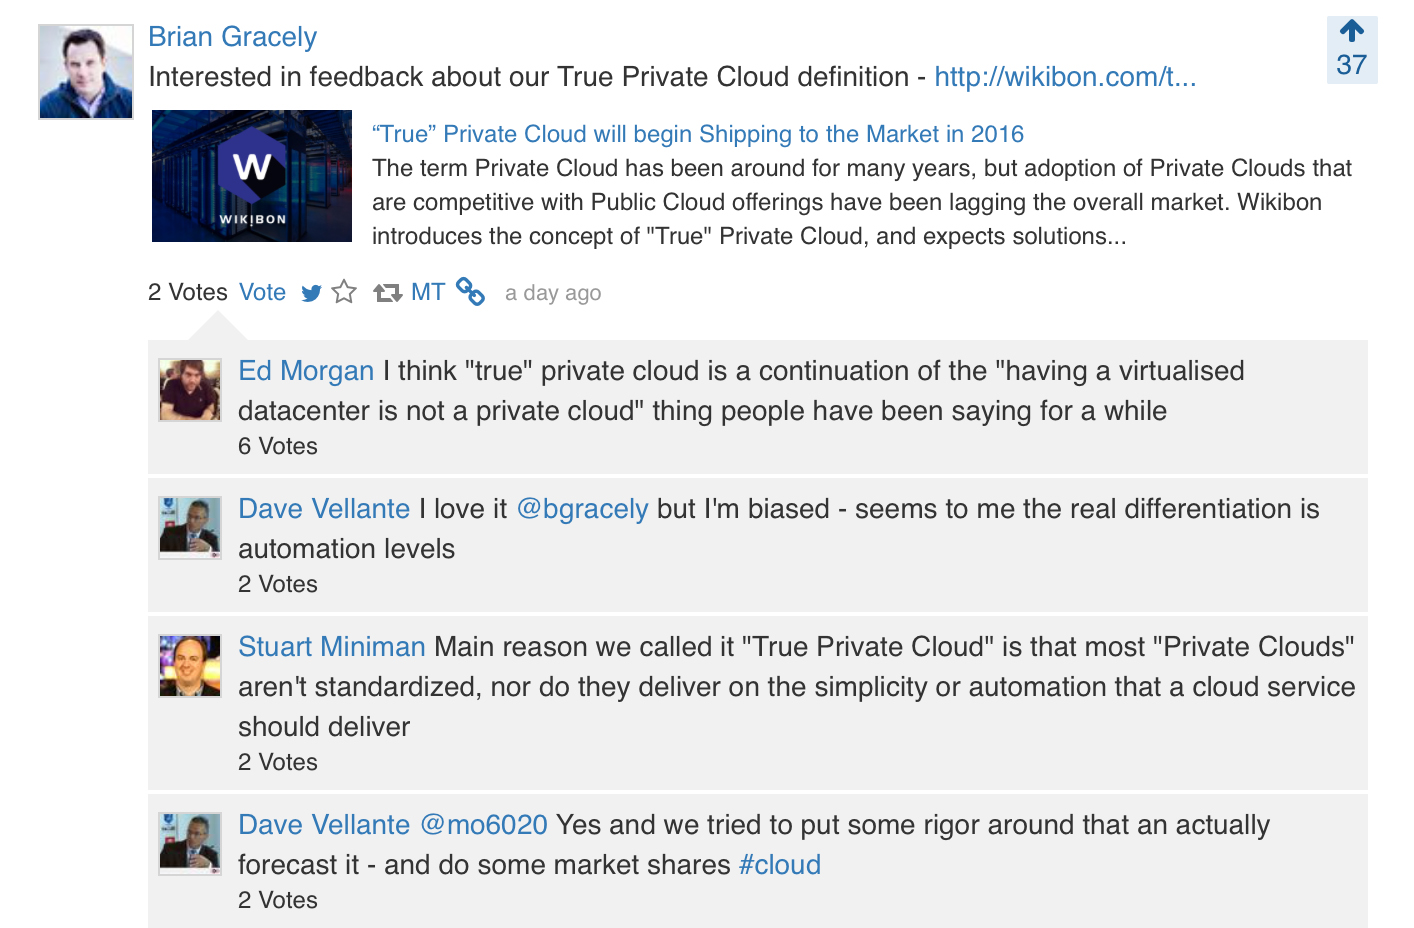 trueprivatecloud crowdchat: what makes a private cloud truly a cloud